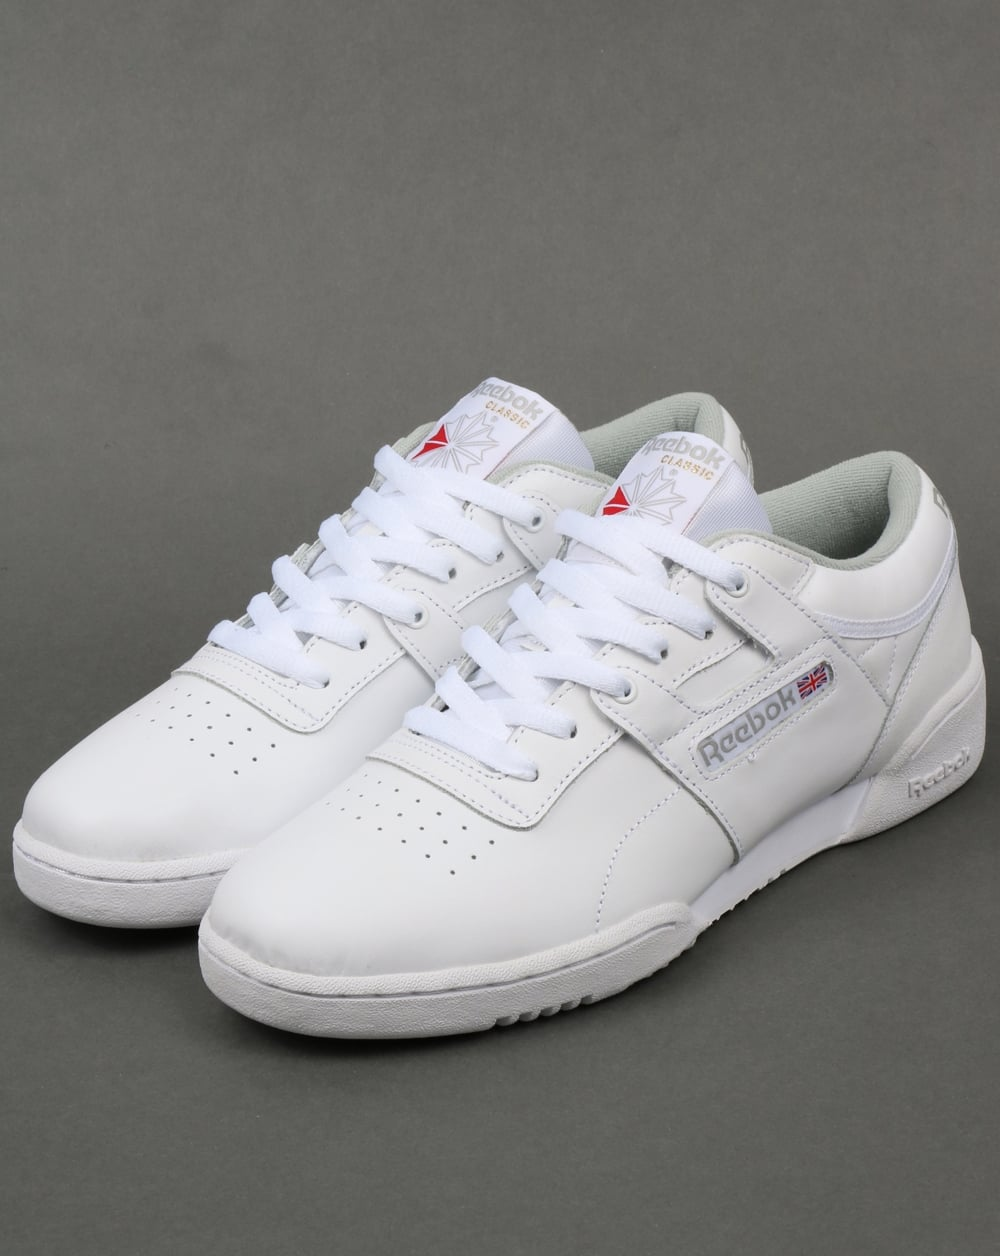 c3f8f29fd63af Reebok Workout Low Trainers White Grey